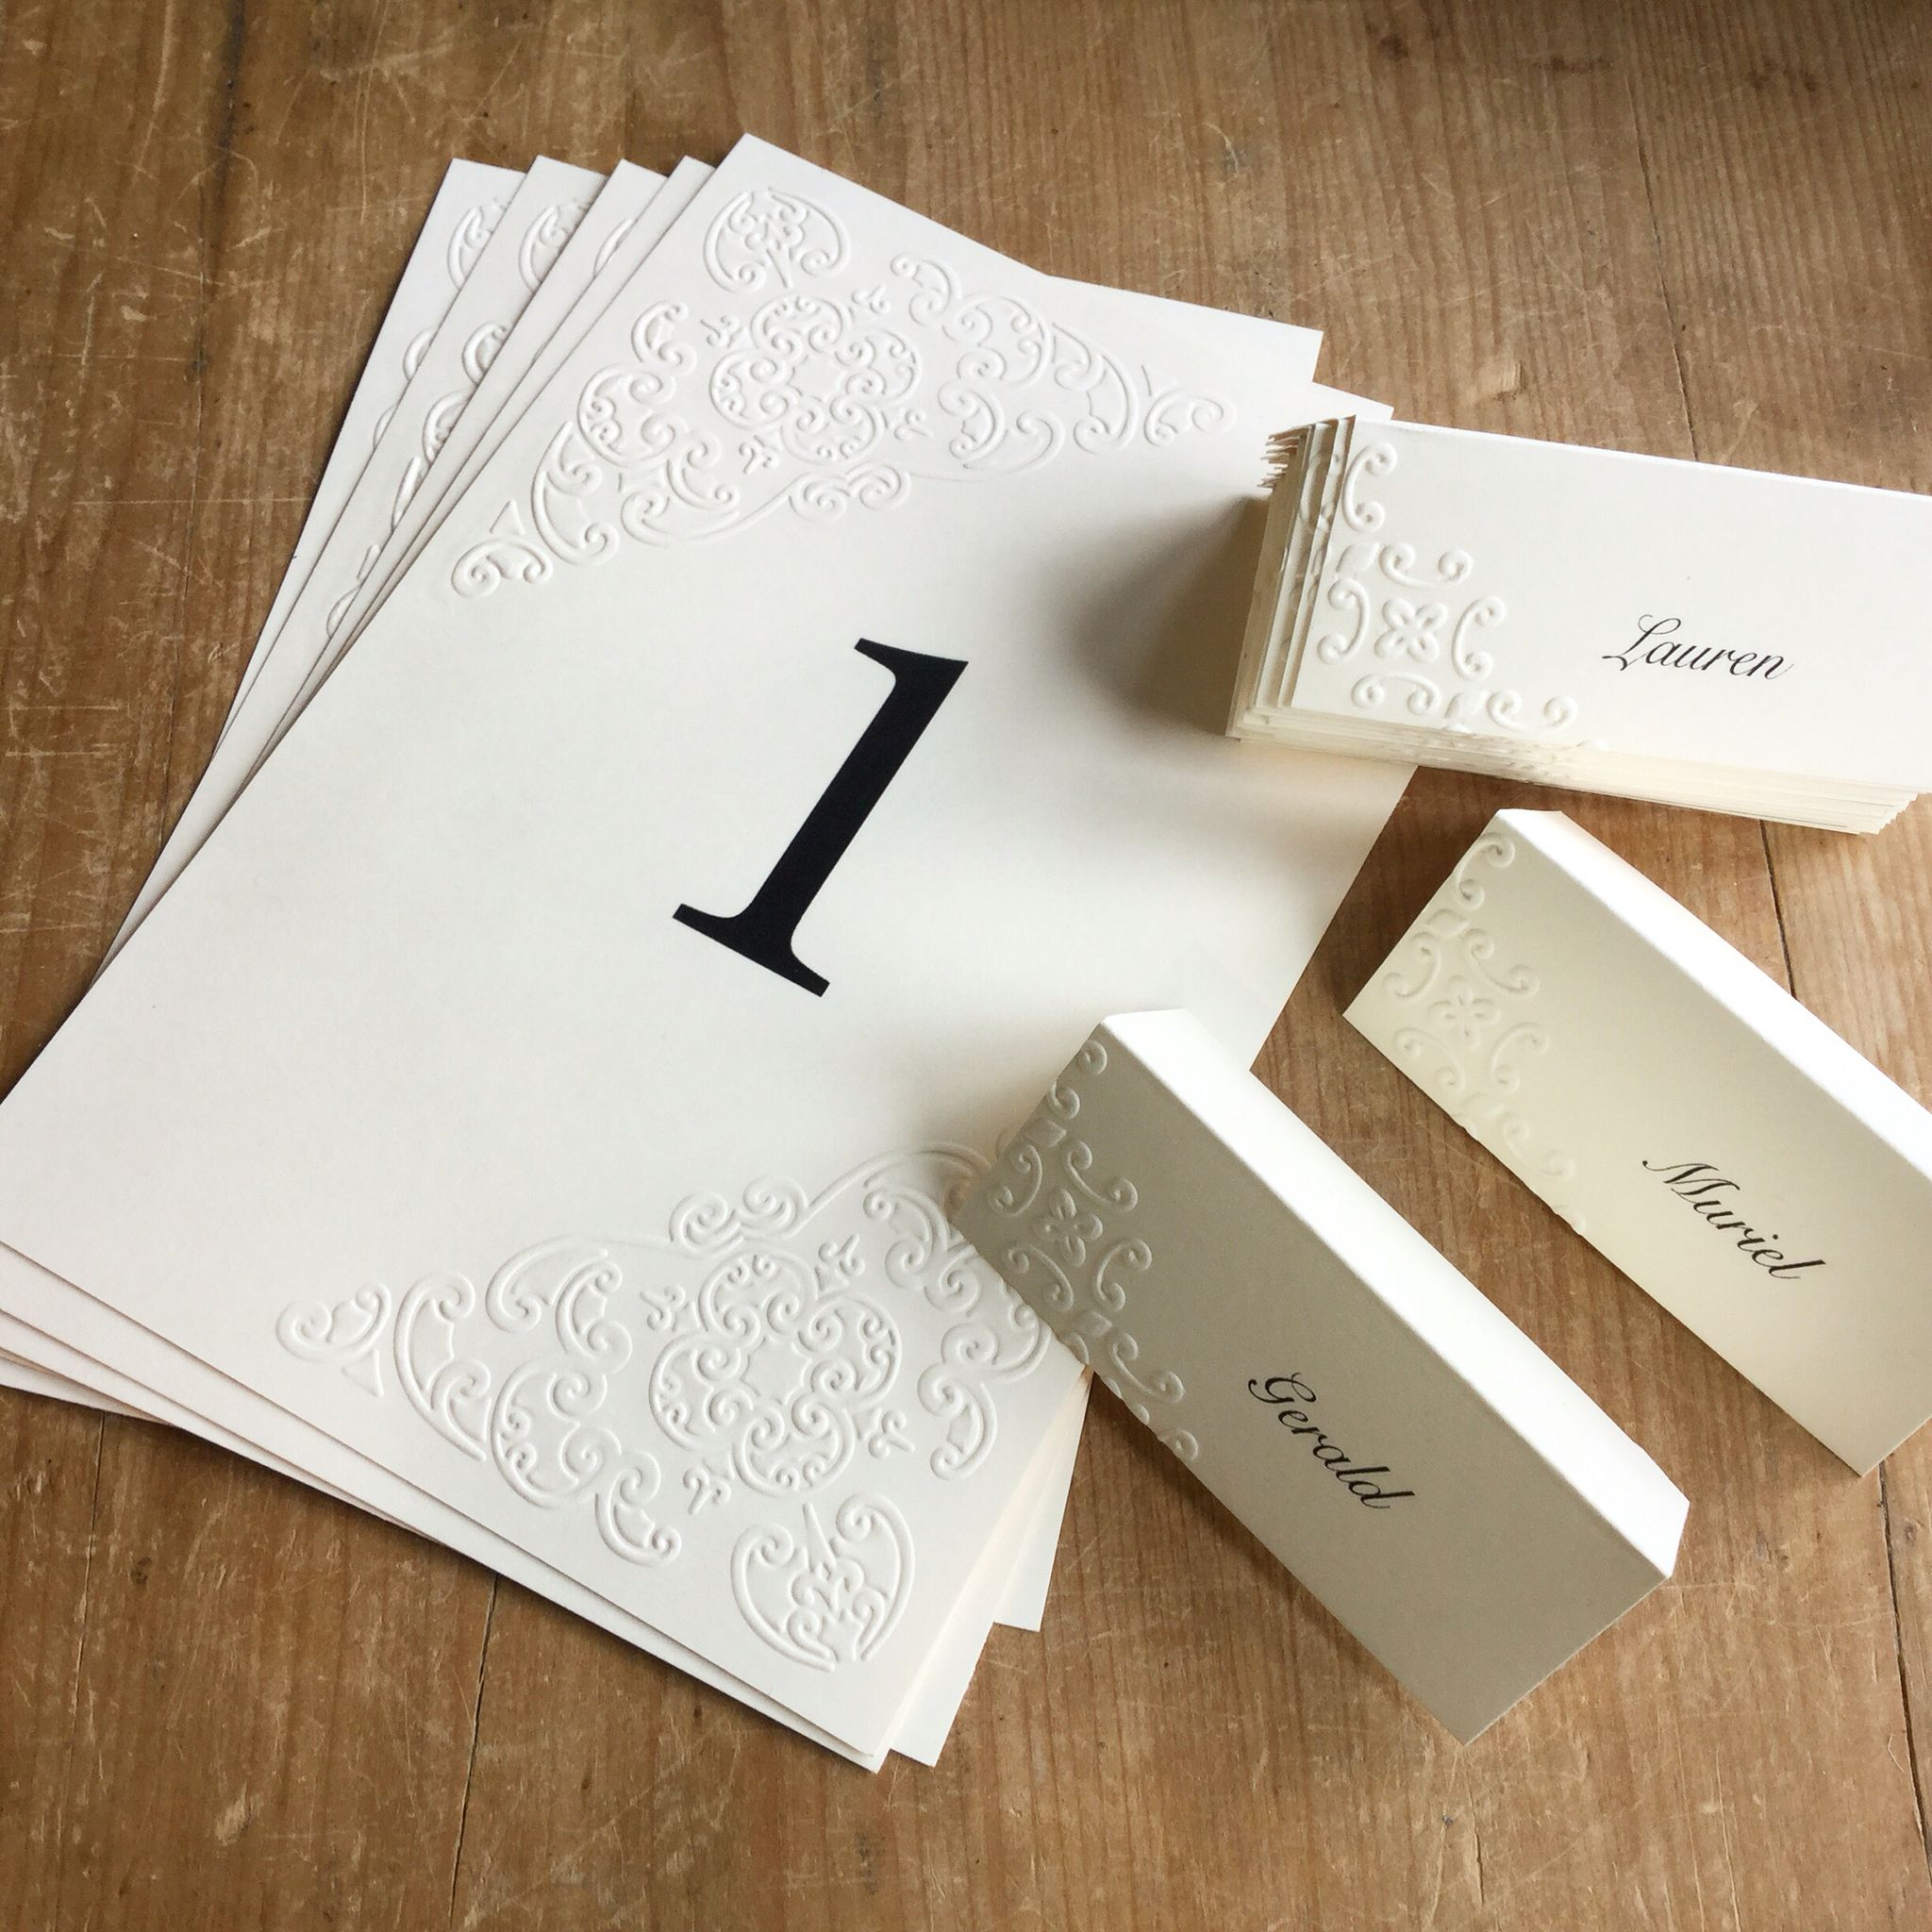 Embossed place and table cards.